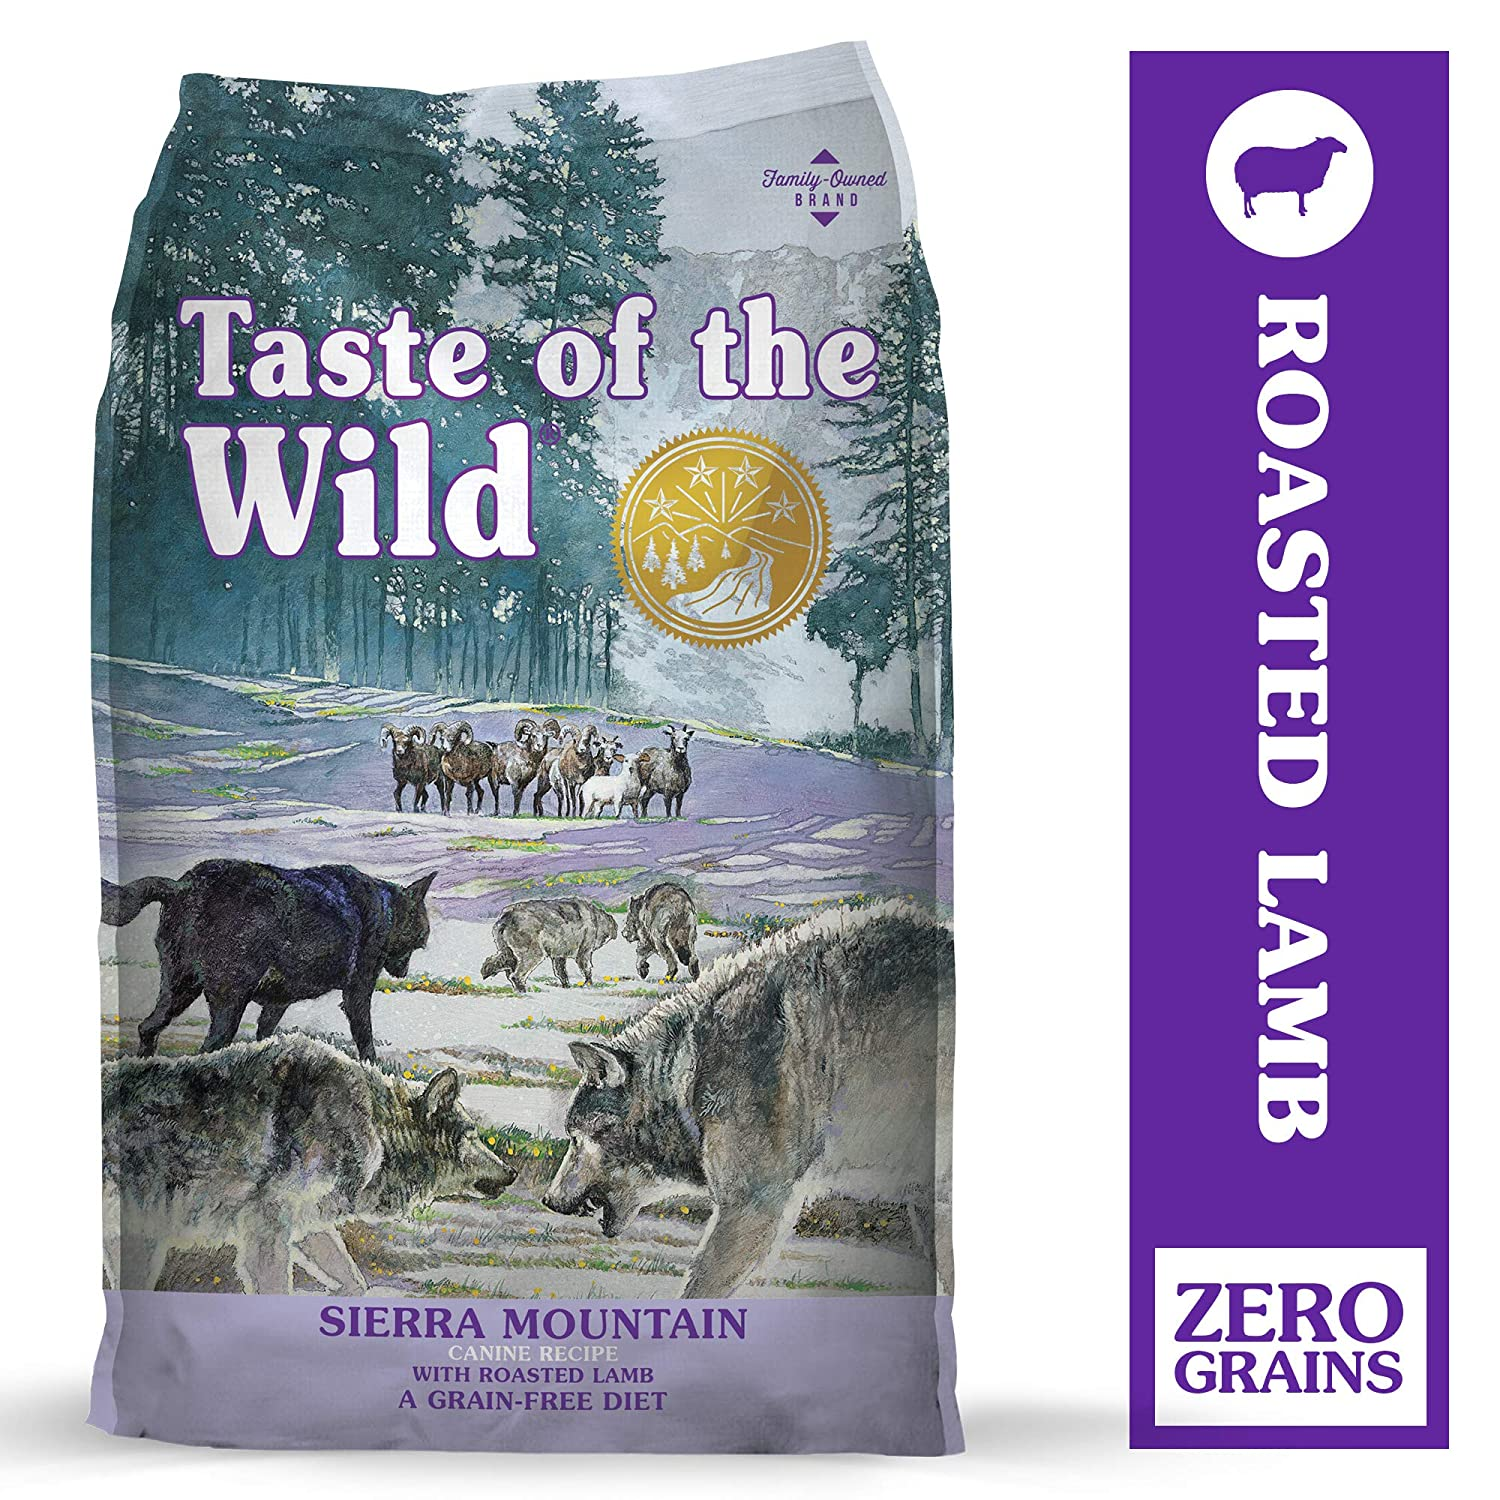 5.Taste of the Wild Sierra Mountain Premium Dry Dog Food